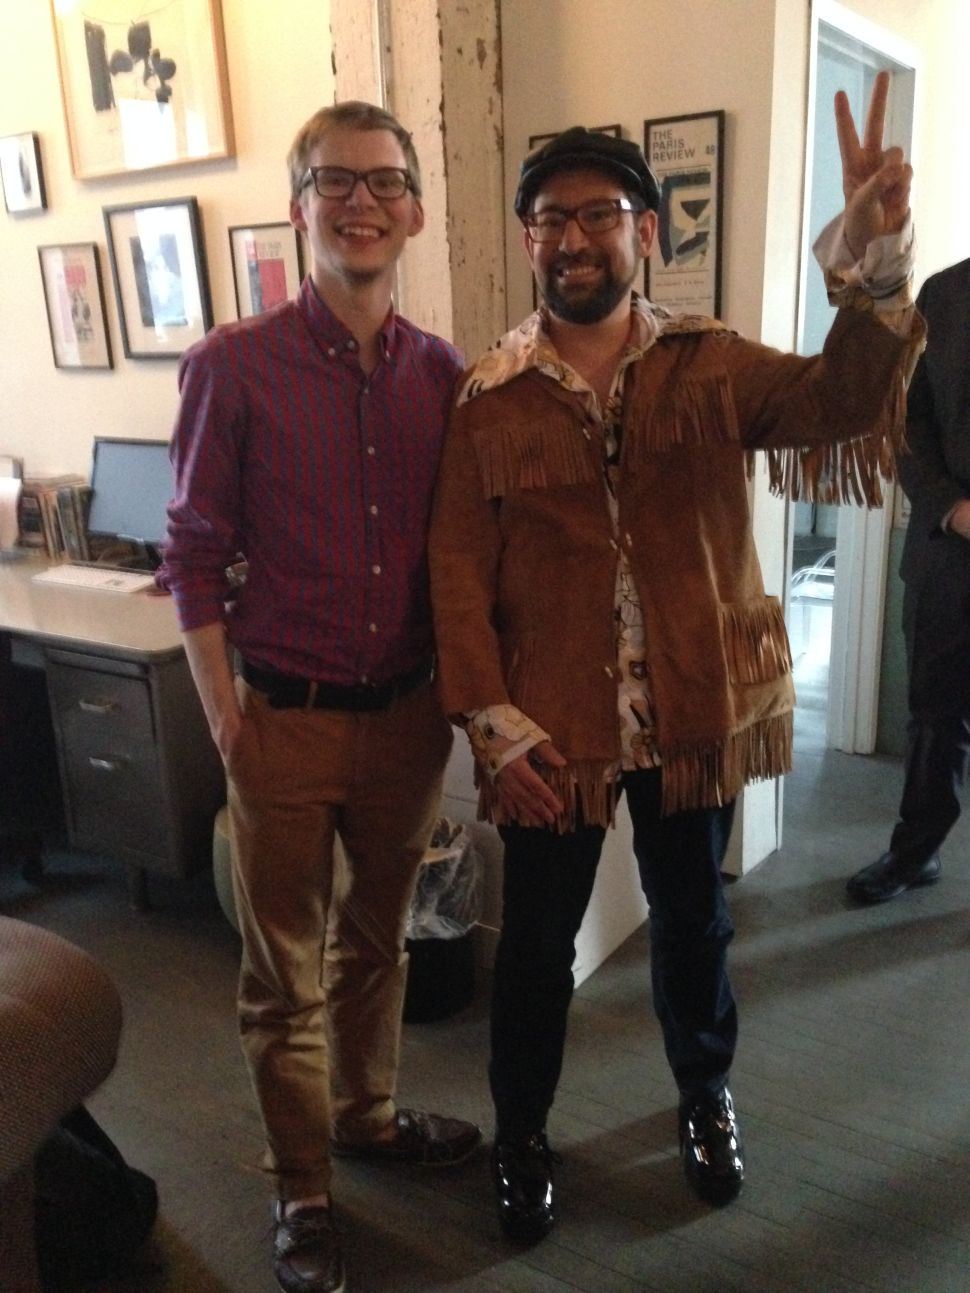 The Paris Review Toasts Rick Perlstein's New Book, The Invisible Bridge